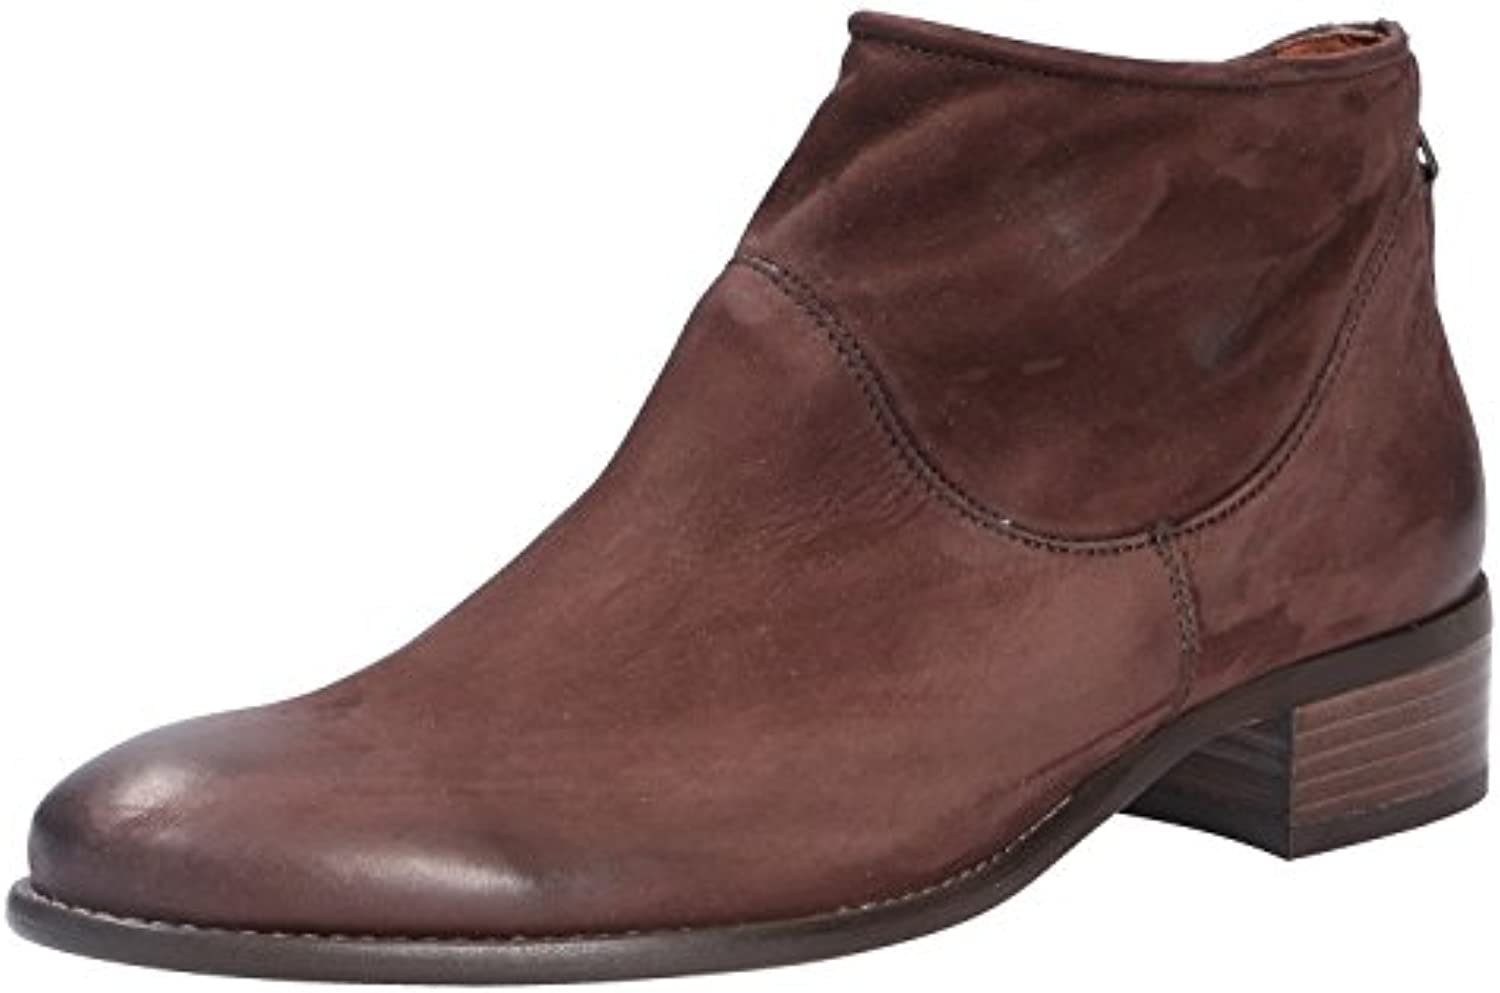 Paul Green Damen Stiefeletten 8086-153 Braun 477849